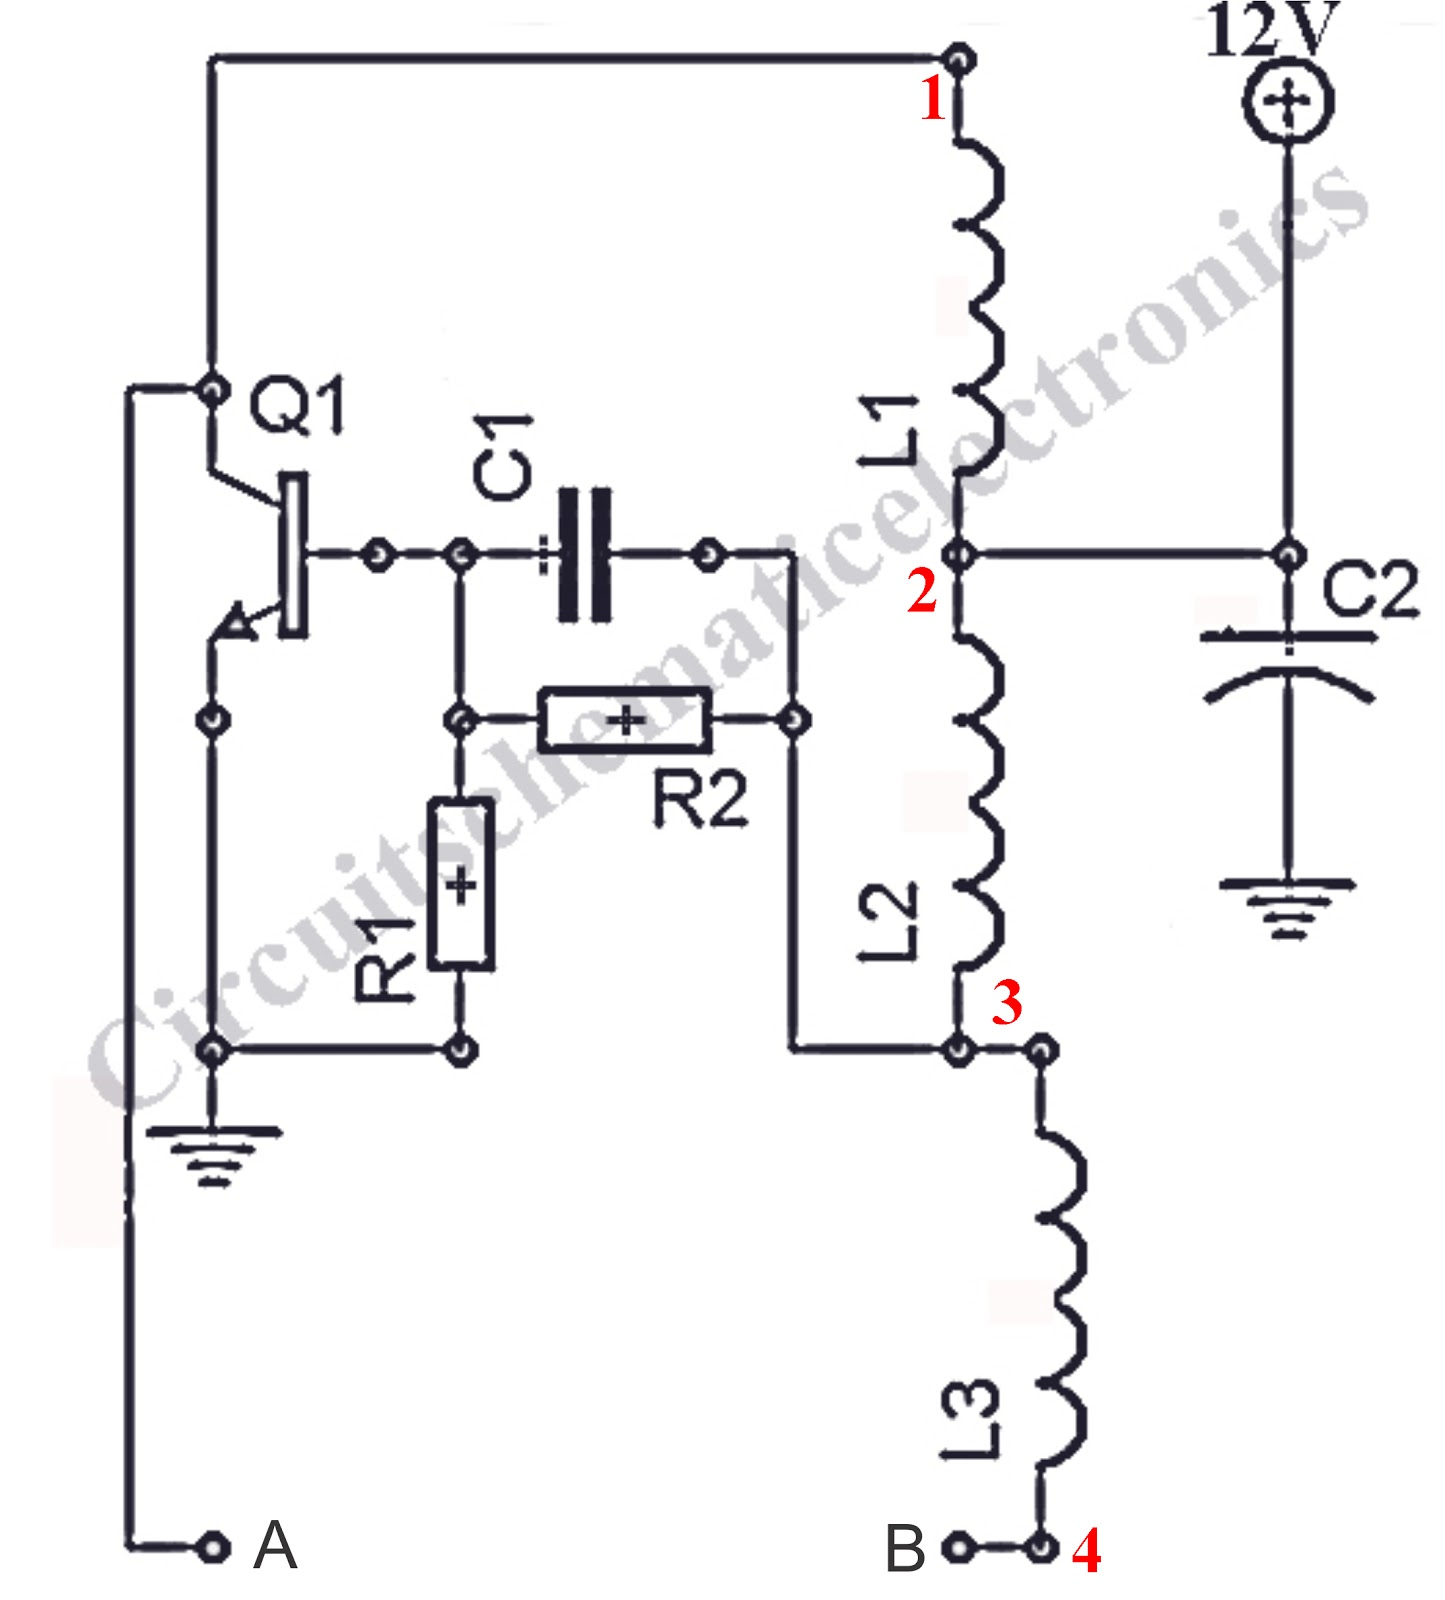 1 5v 12v Inverter Schematic